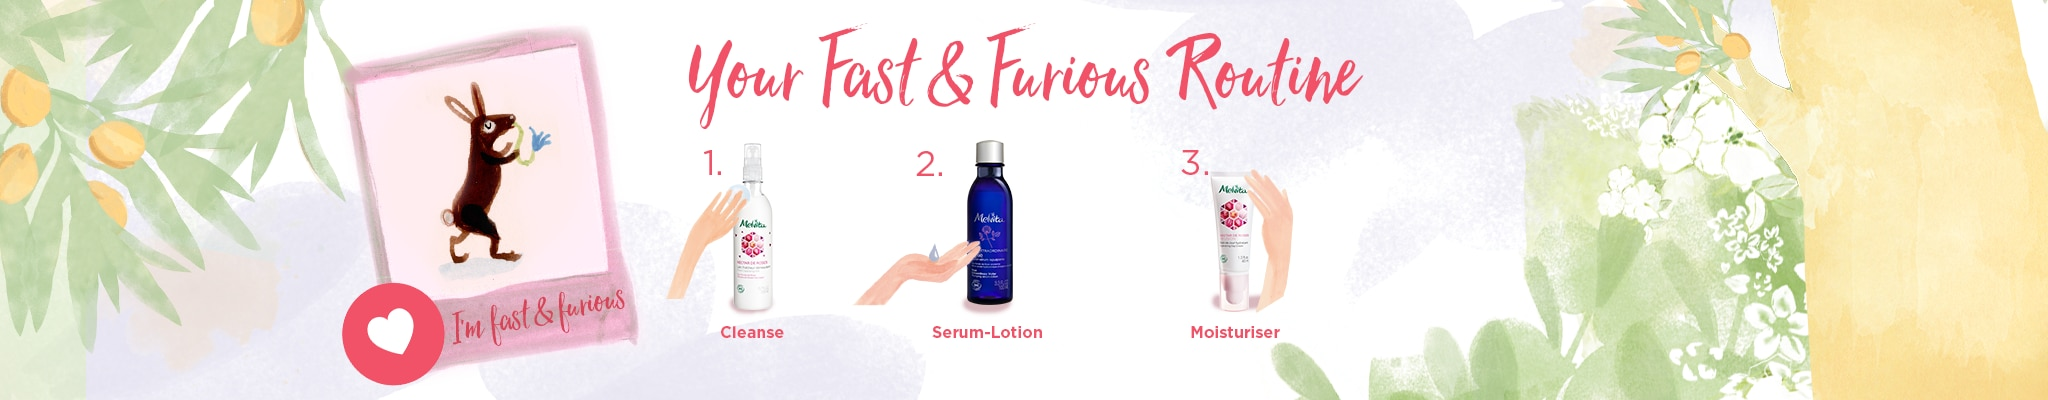 Your Fast and Furious Skincare Routine